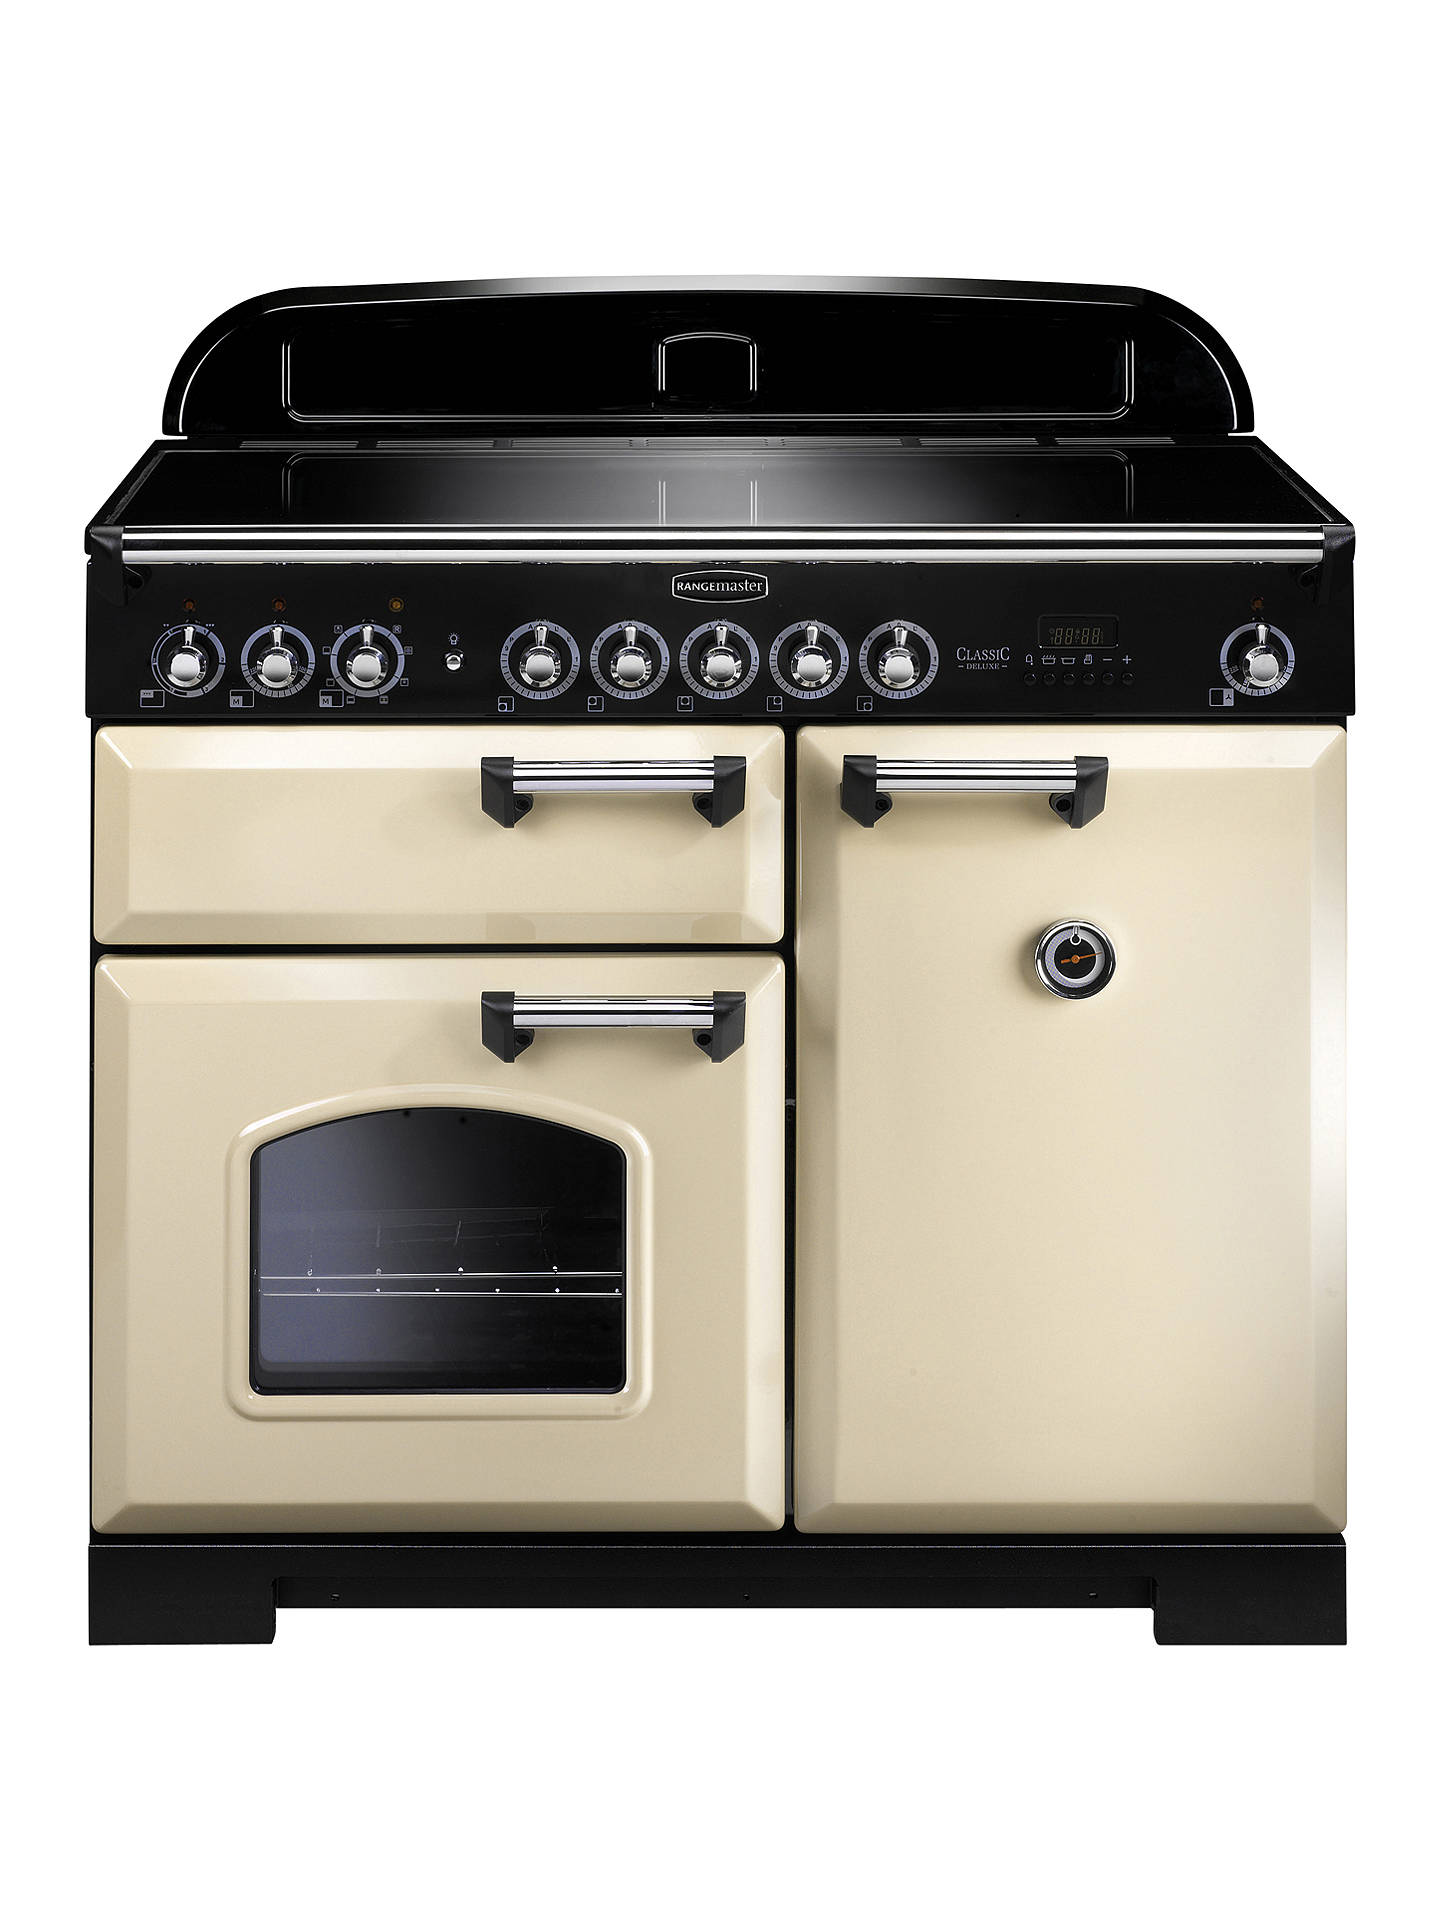 Buy Rangemaster Classic Deluxe 100 Induction Hob Range Cooker, Cream/Chrome Trim Online at johnlewis.com